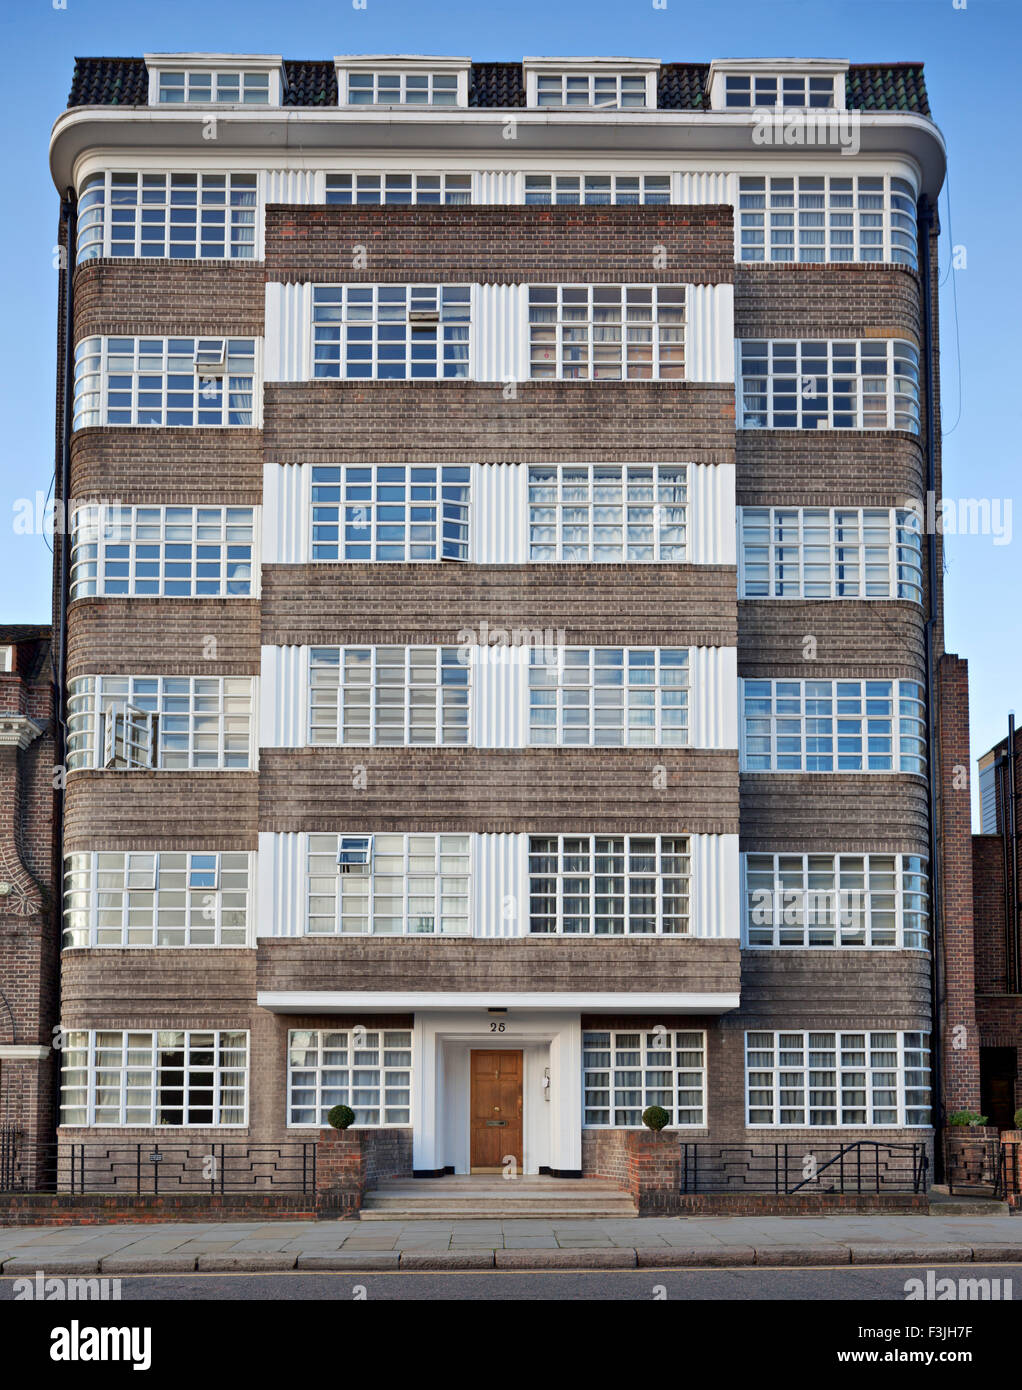 art deco apartment building in the london borough of kensington and